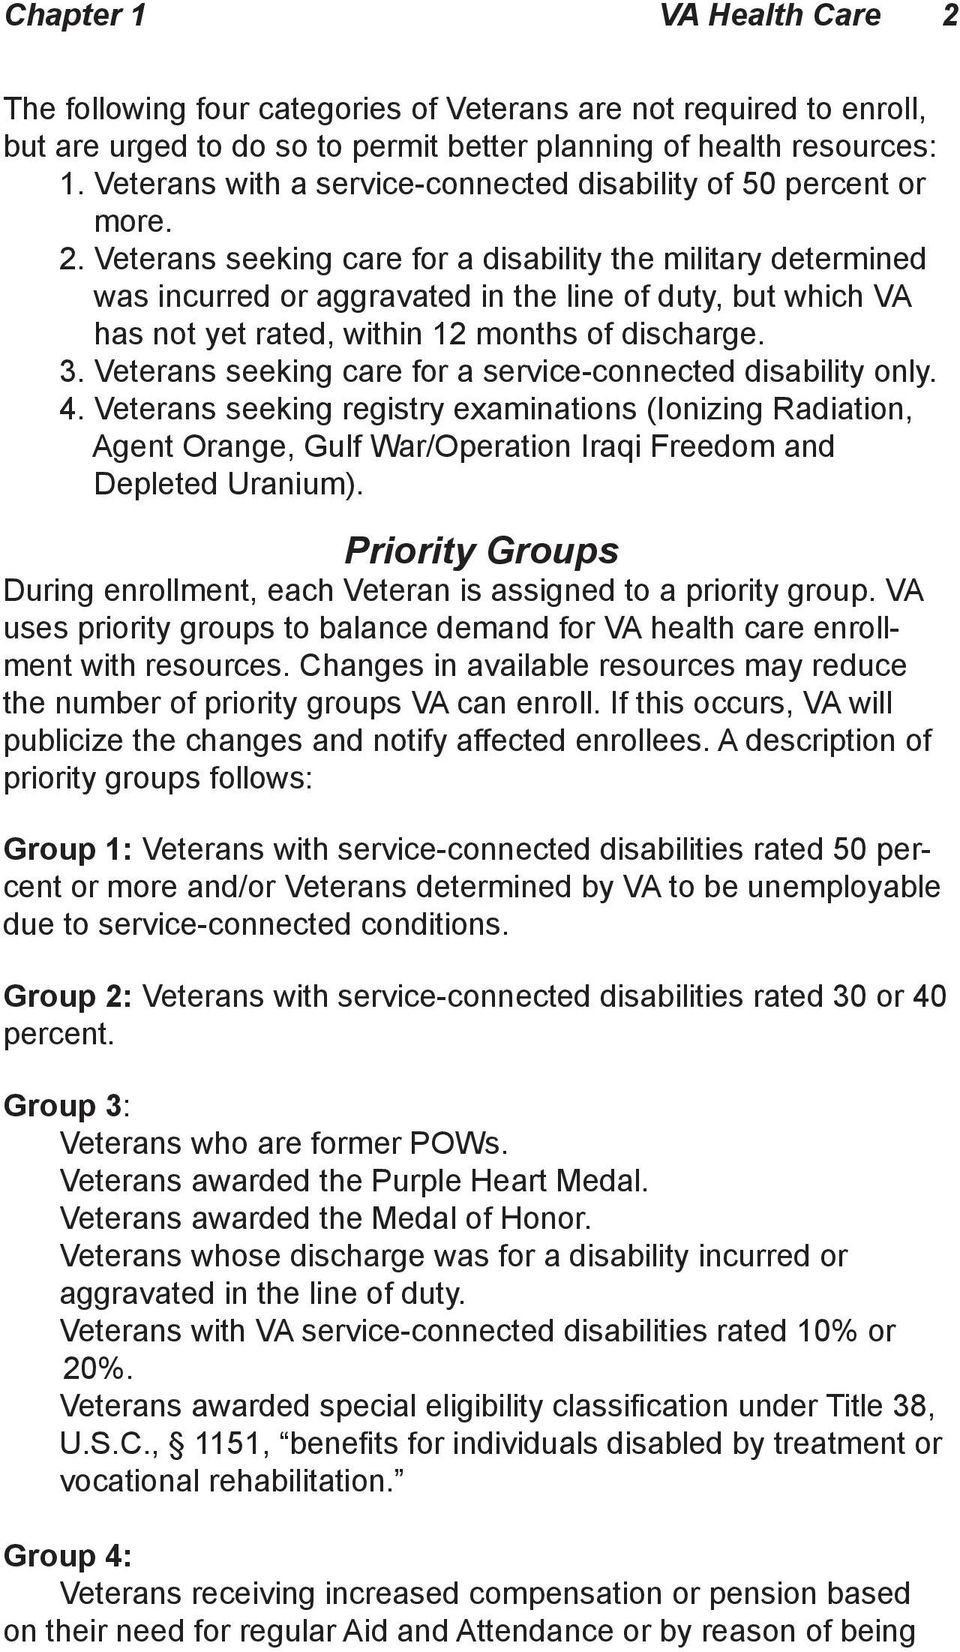 Veterans seeking care for a disability the military determined was incurred or aggravated in the line of duty, but which VA has not yet rated, within 12 months of discharge. 3.